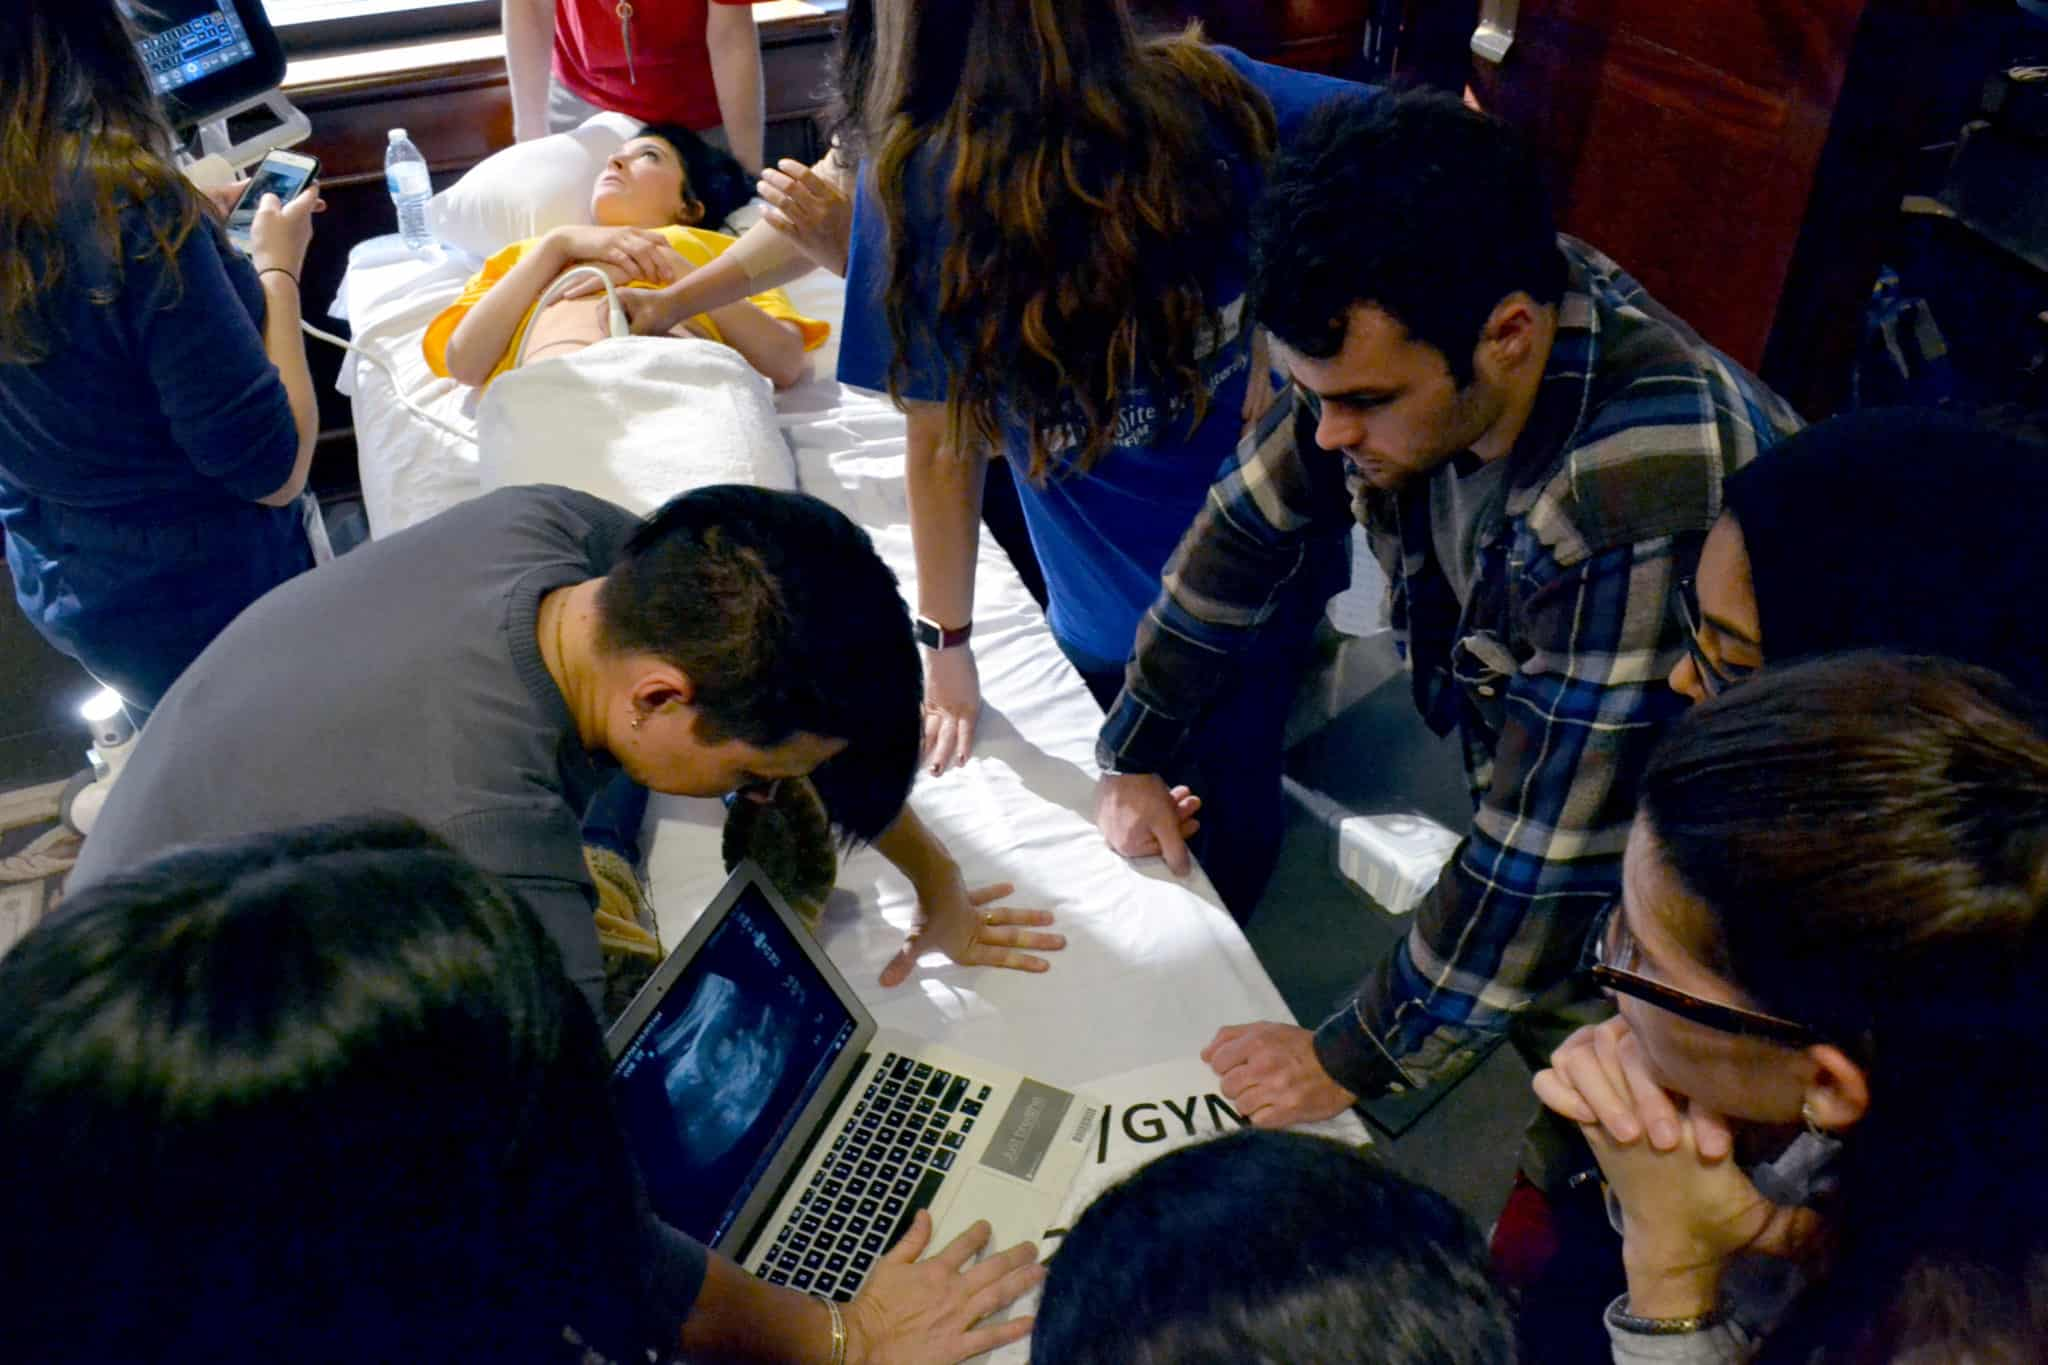 UAMS faculty work as volunteer instructors demonstrating ultrasound applications on a college student volunteer as medical students observe and learn during Ultrafest.